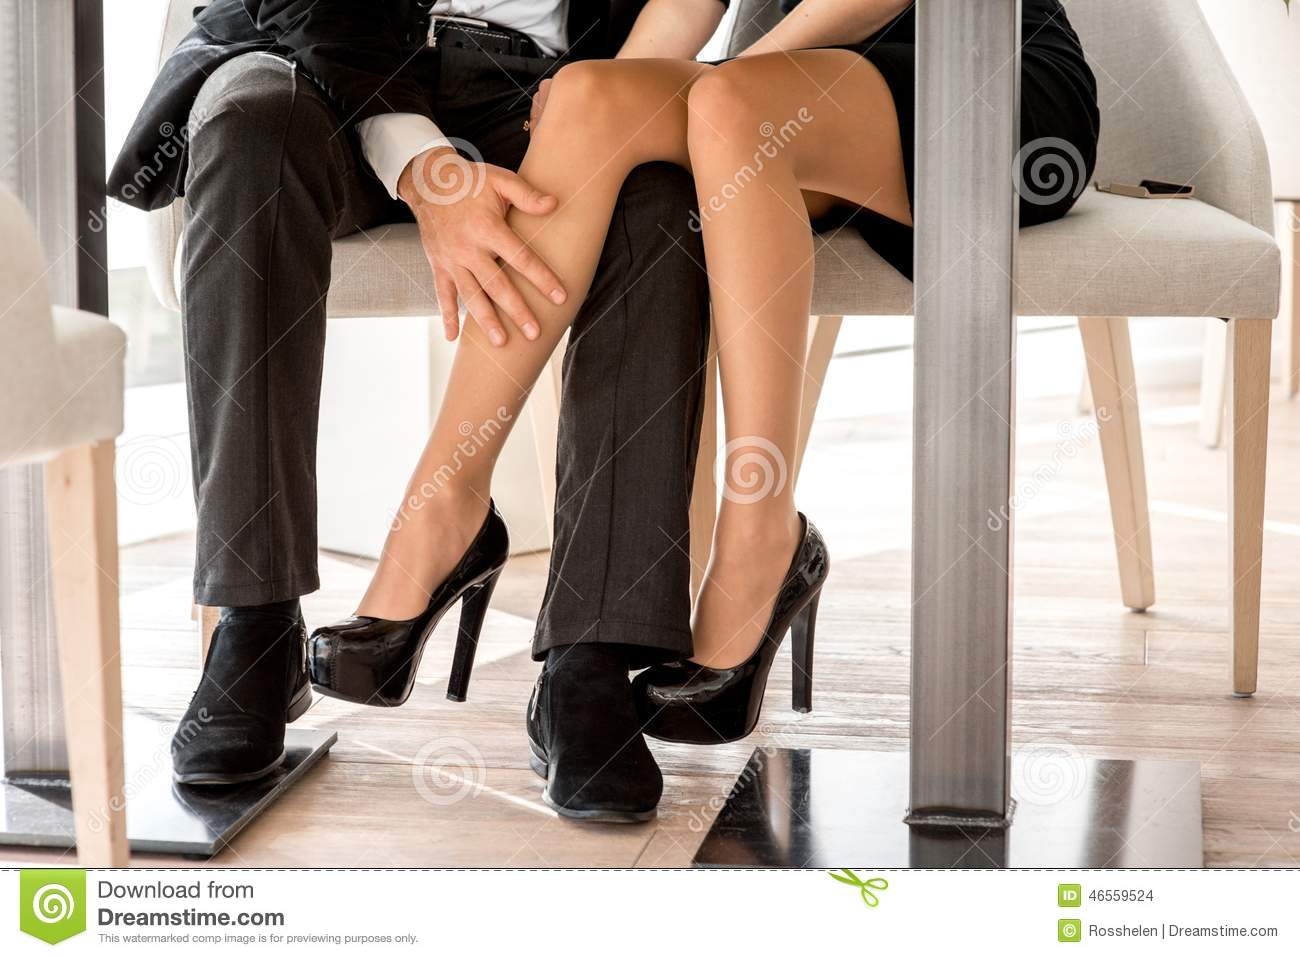 Women With Leg Under Table Free Photo 70